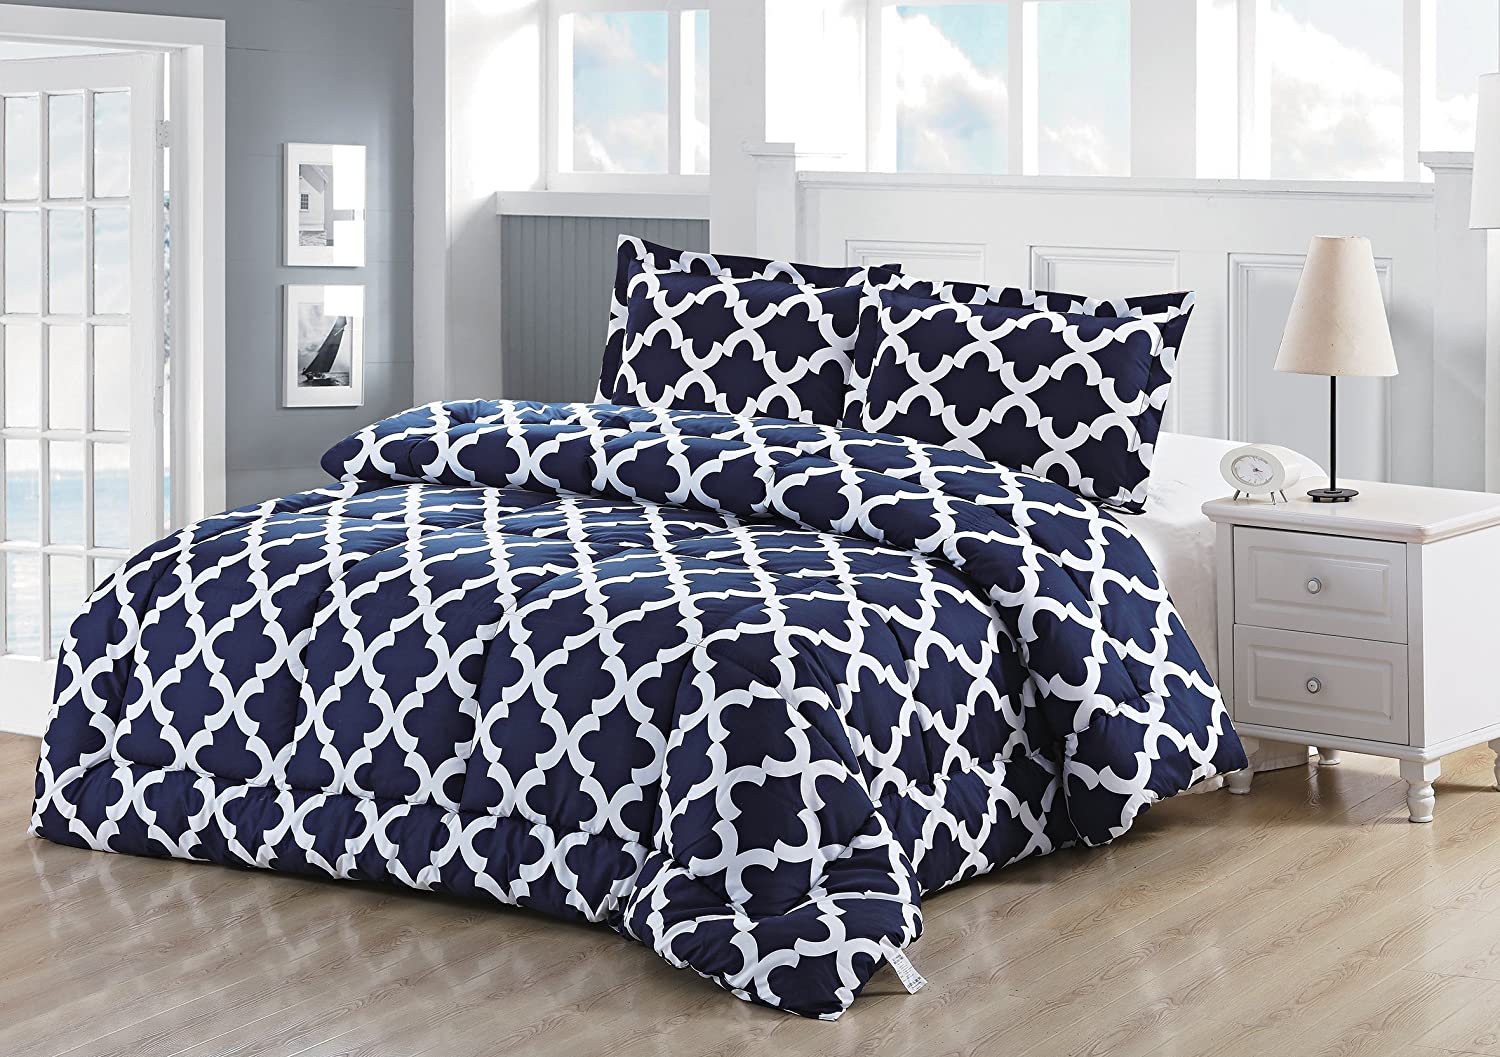 Printed Comforter Set (Navy, King) with 2 Pillow Shams